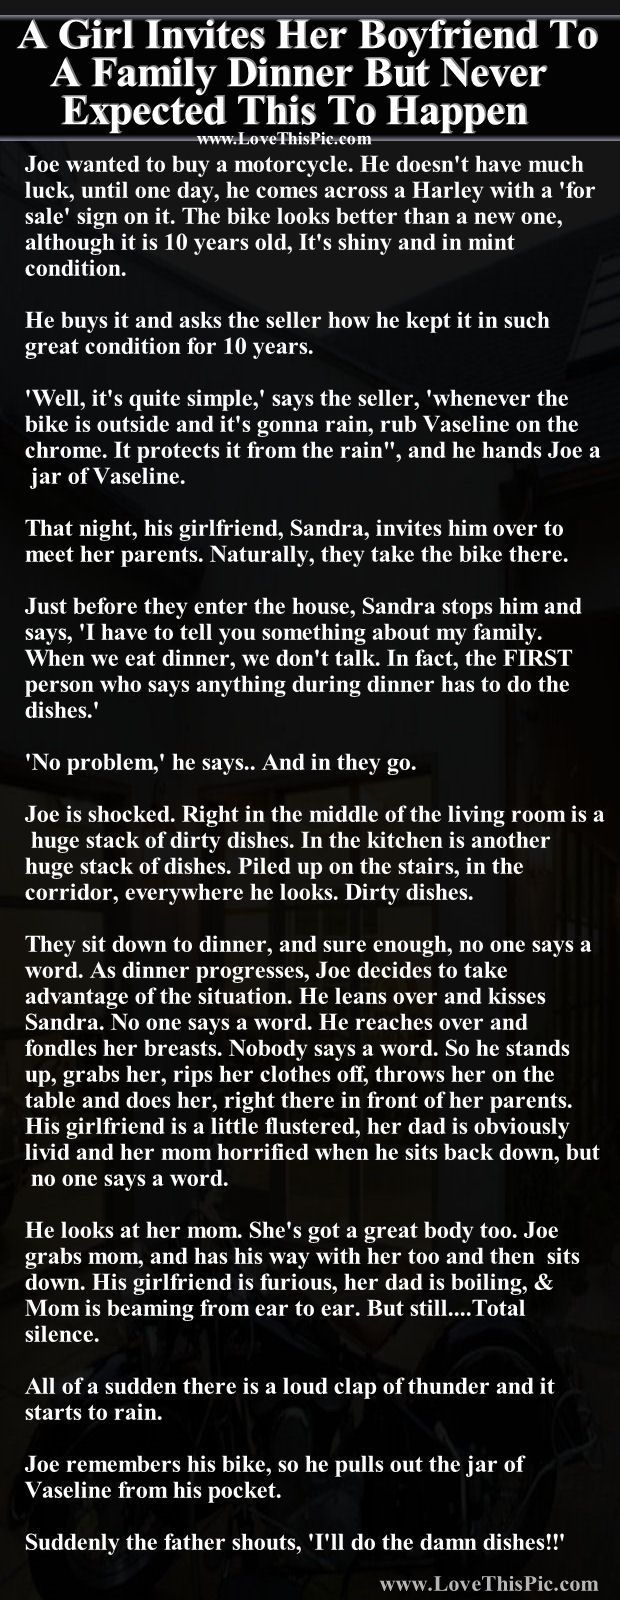 A Girl Invites Her Boyfriend To A Family Dinner But Never Expected This To Happen funny jokes story